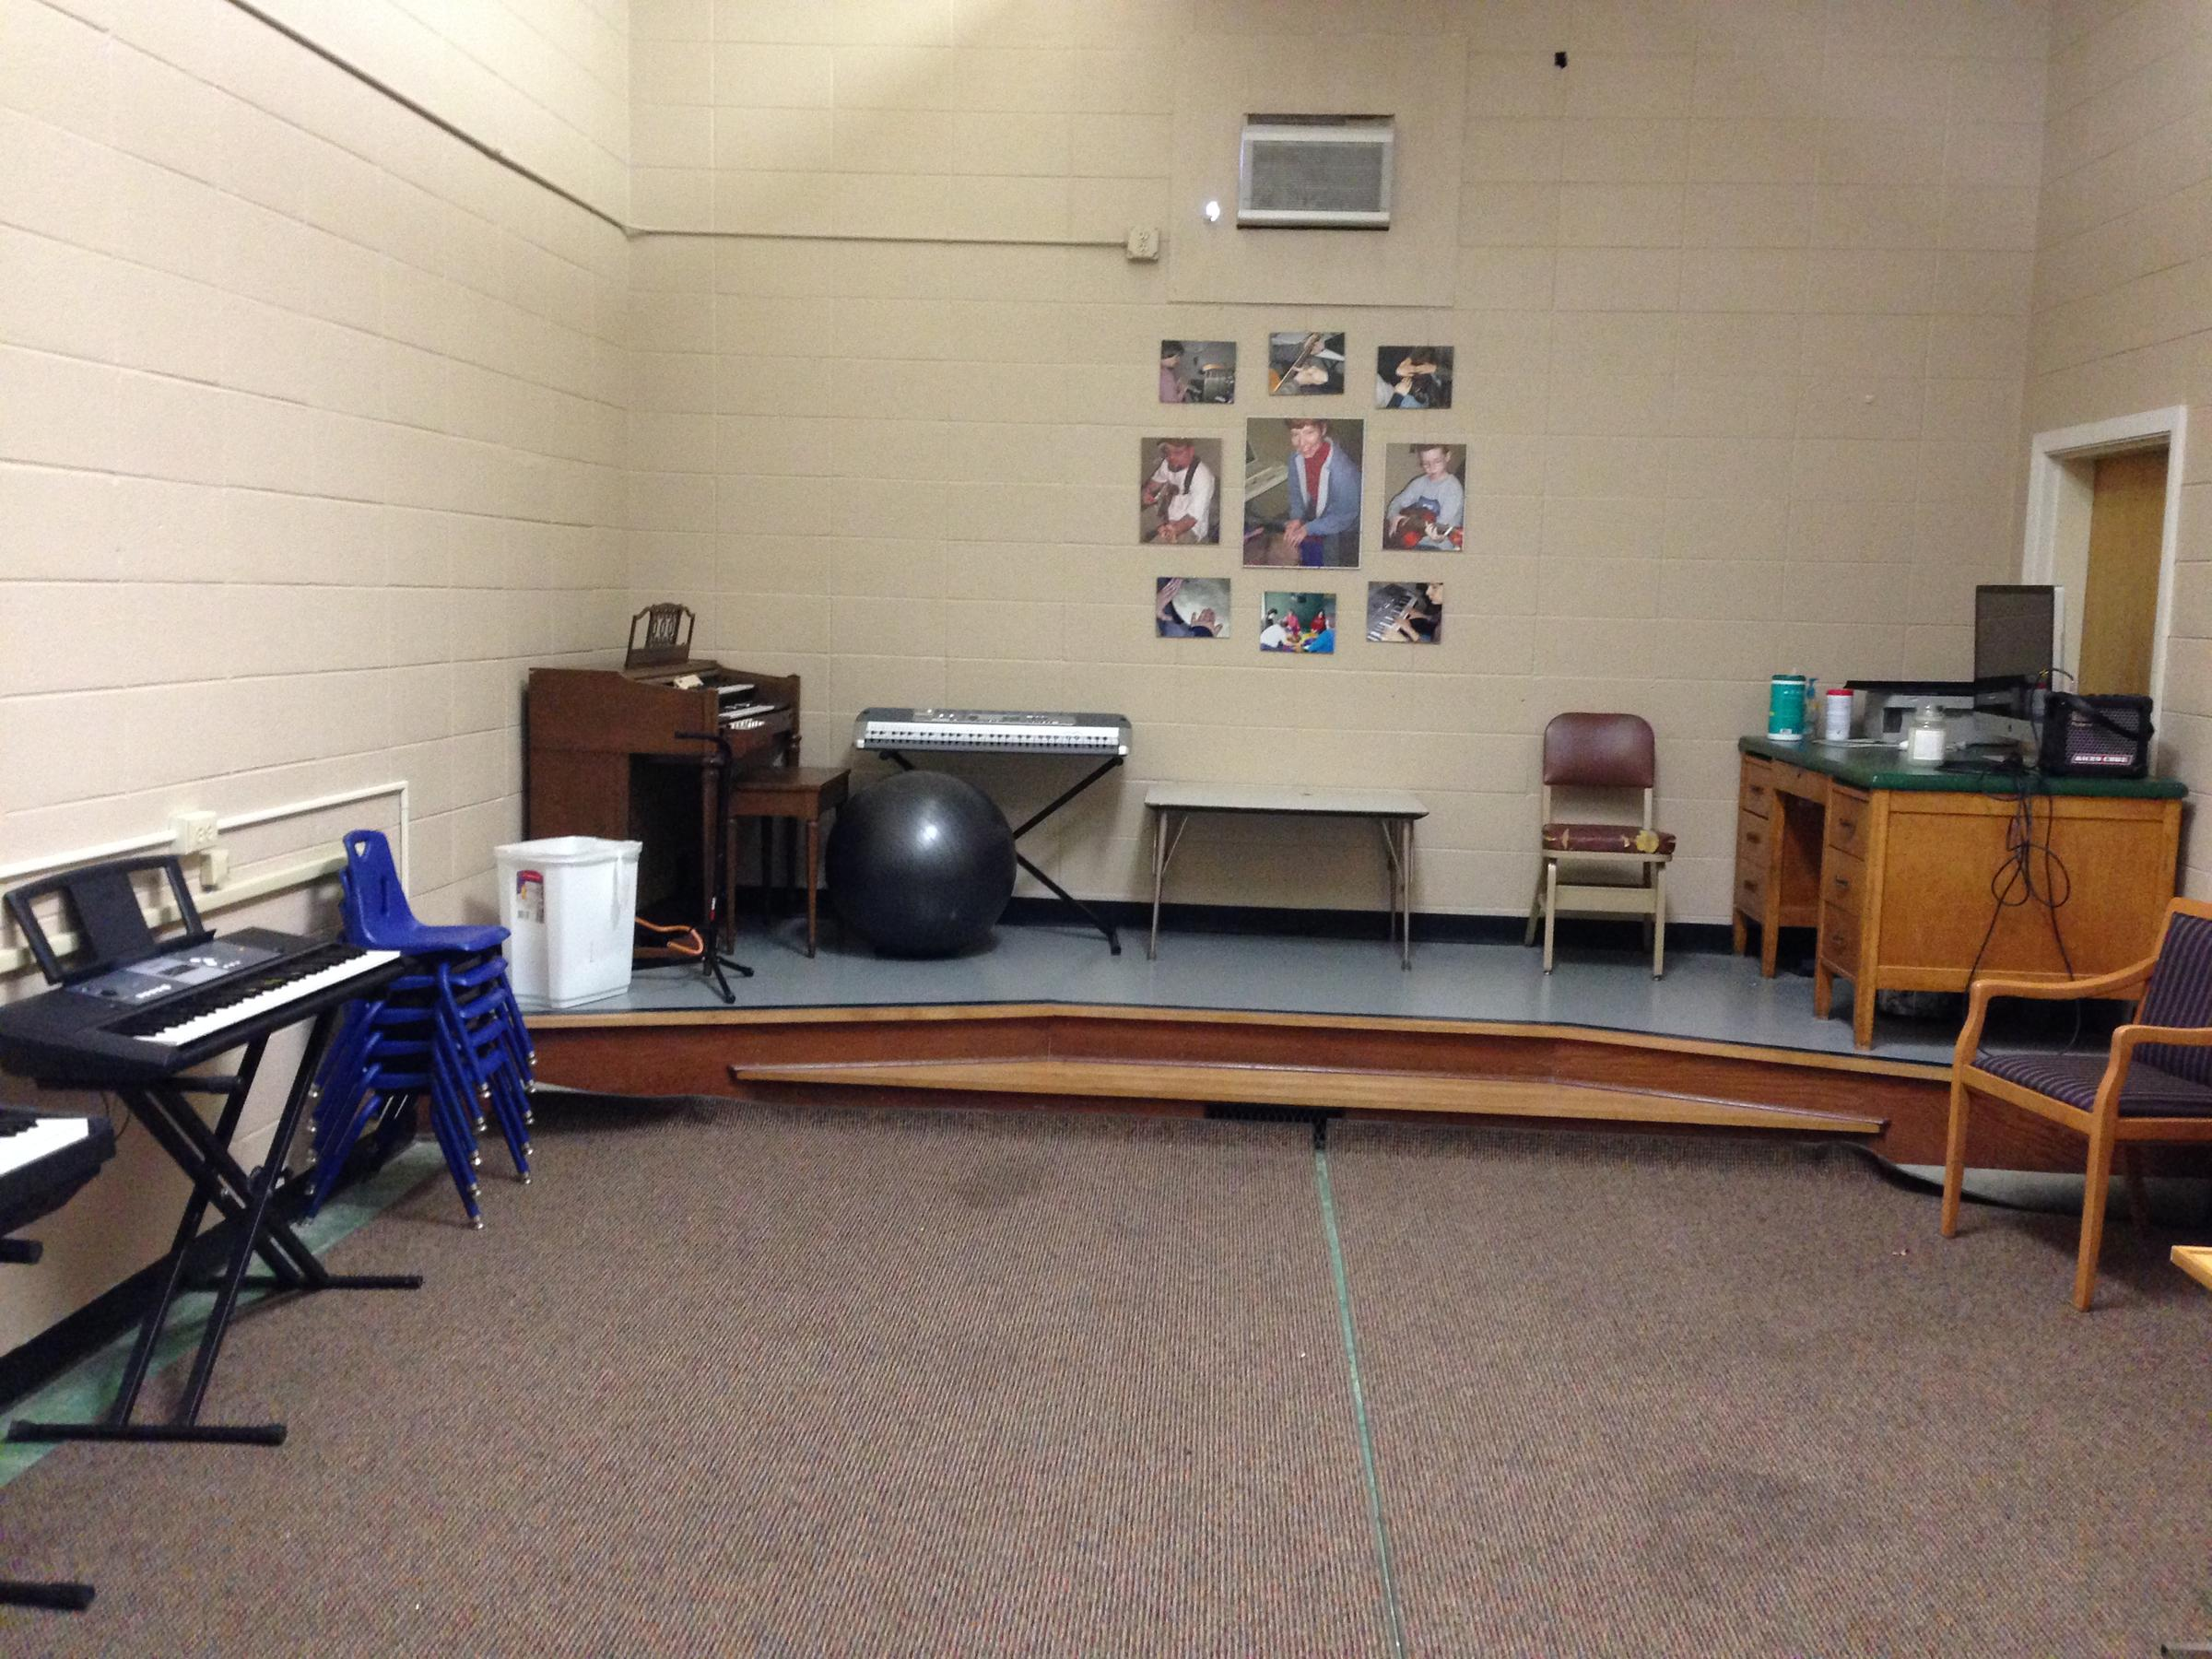 One Of The Therapy Rooms At Drurys Center For Music And Wellness